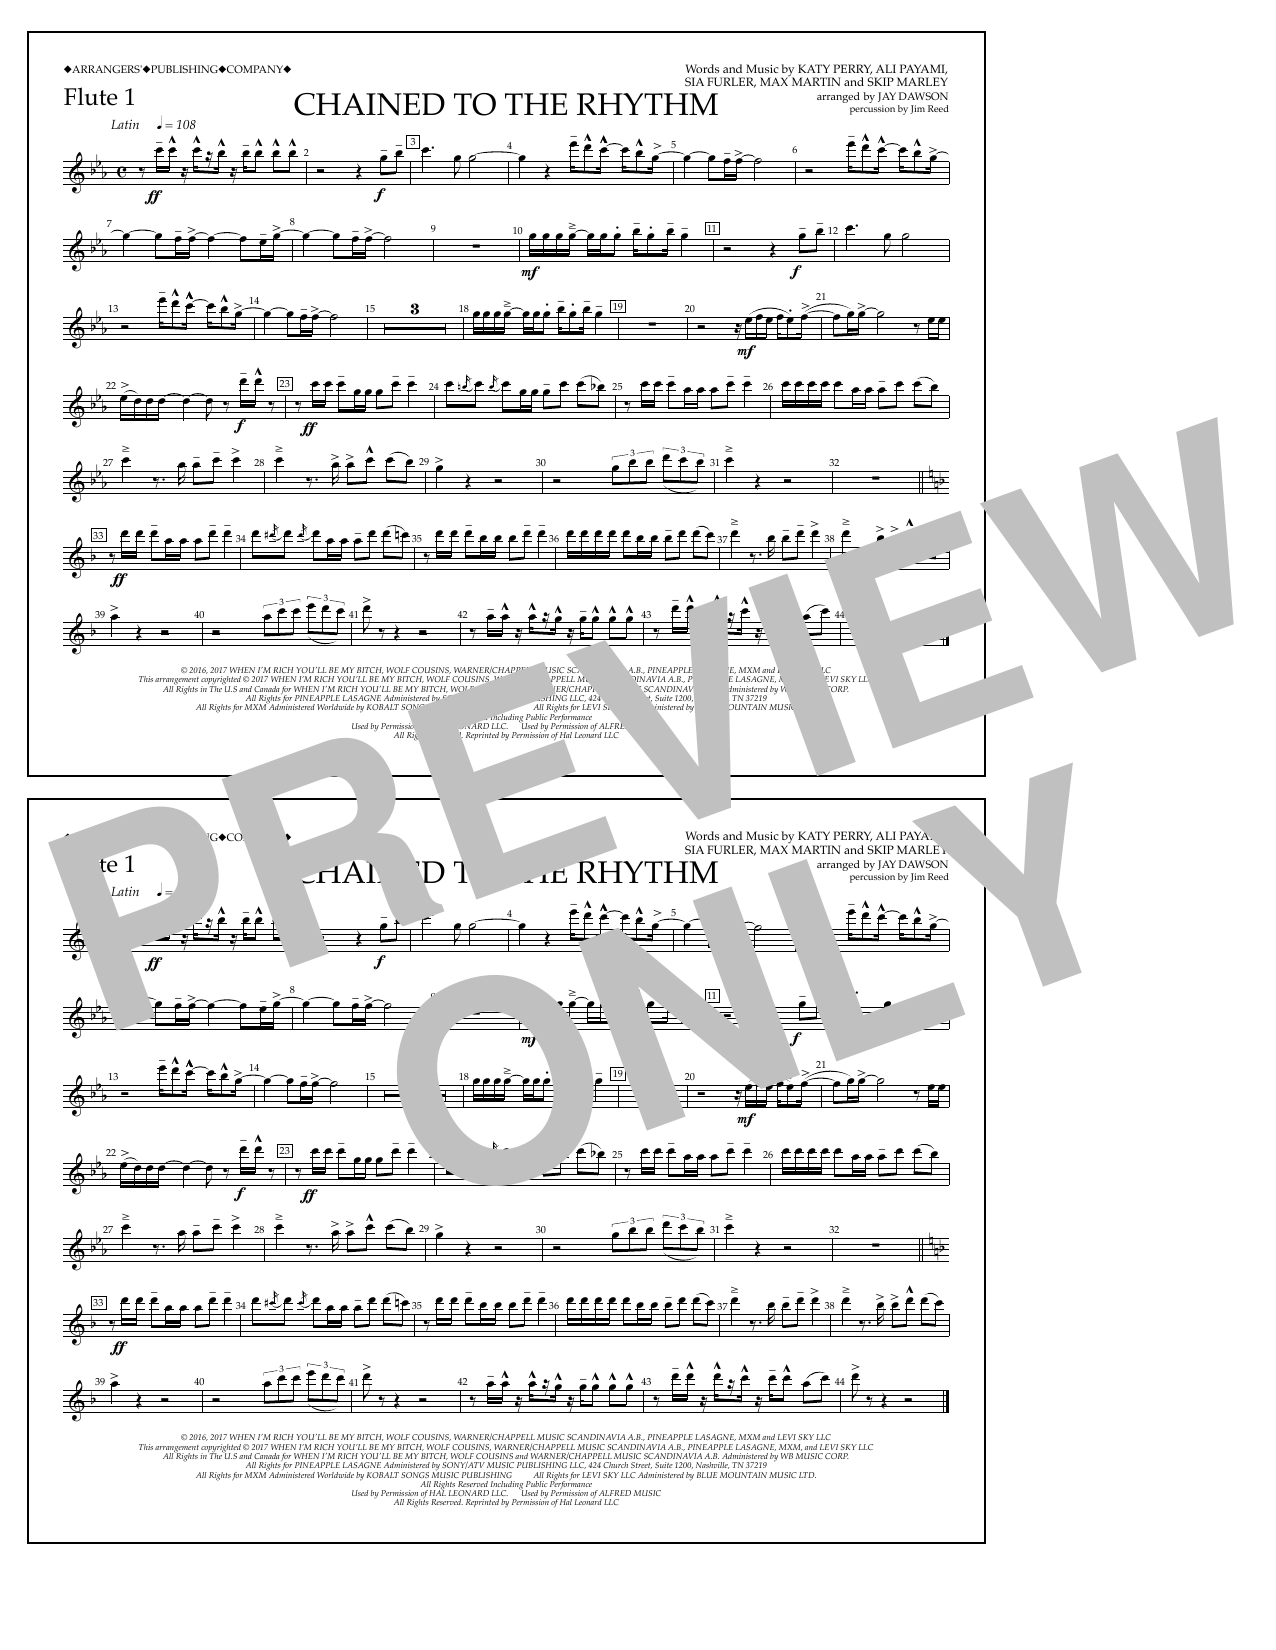 Chained to the Rhythm - Flute 1 Sheet Music